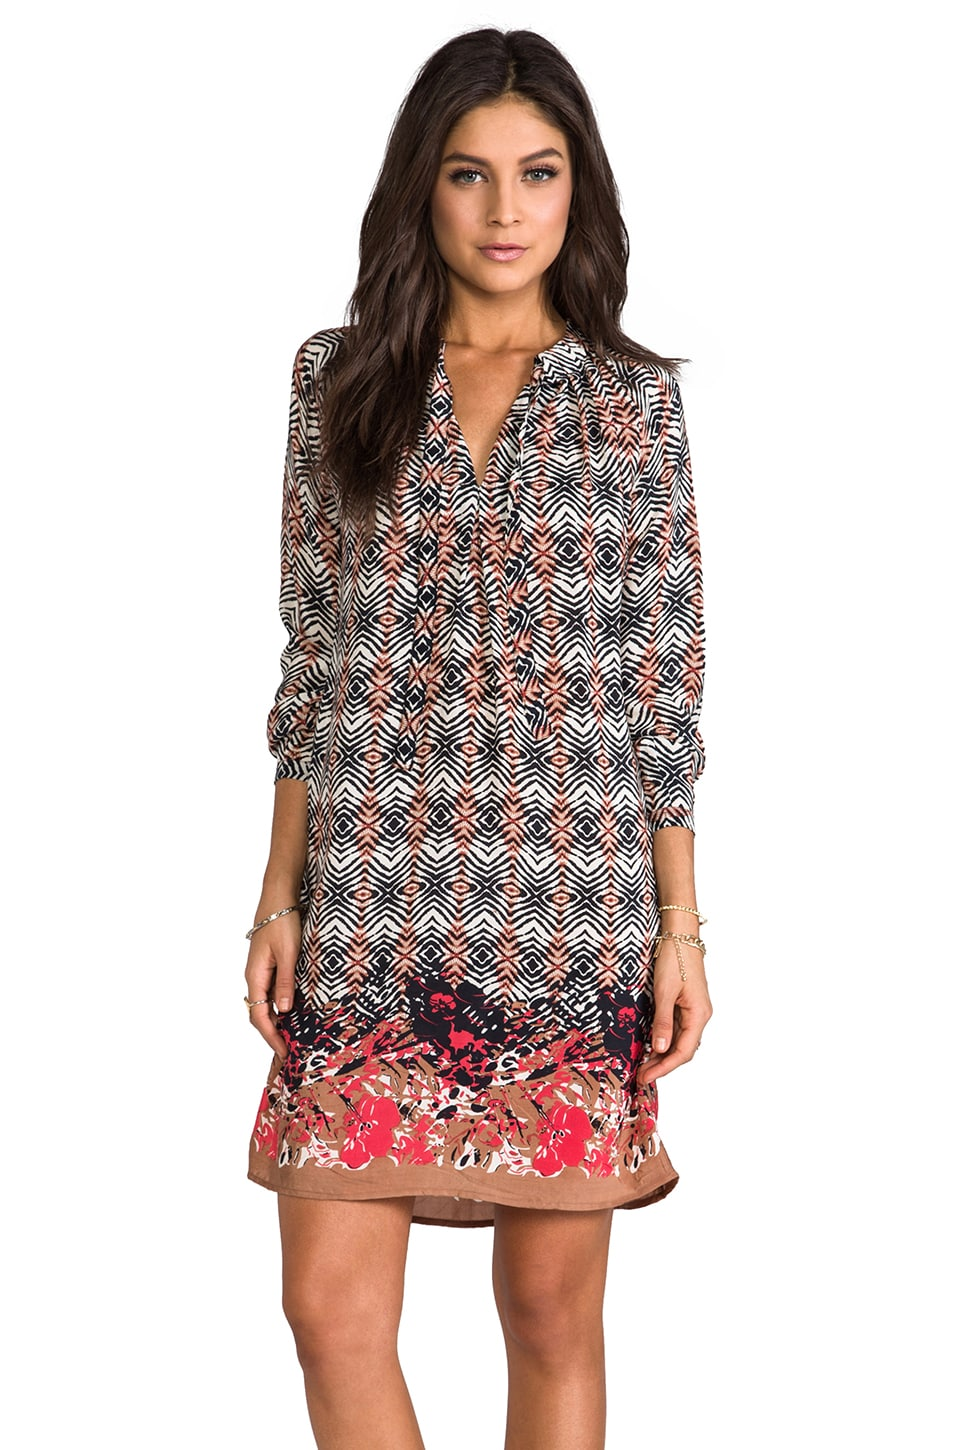 Tolani Hazel Dress in Tribal